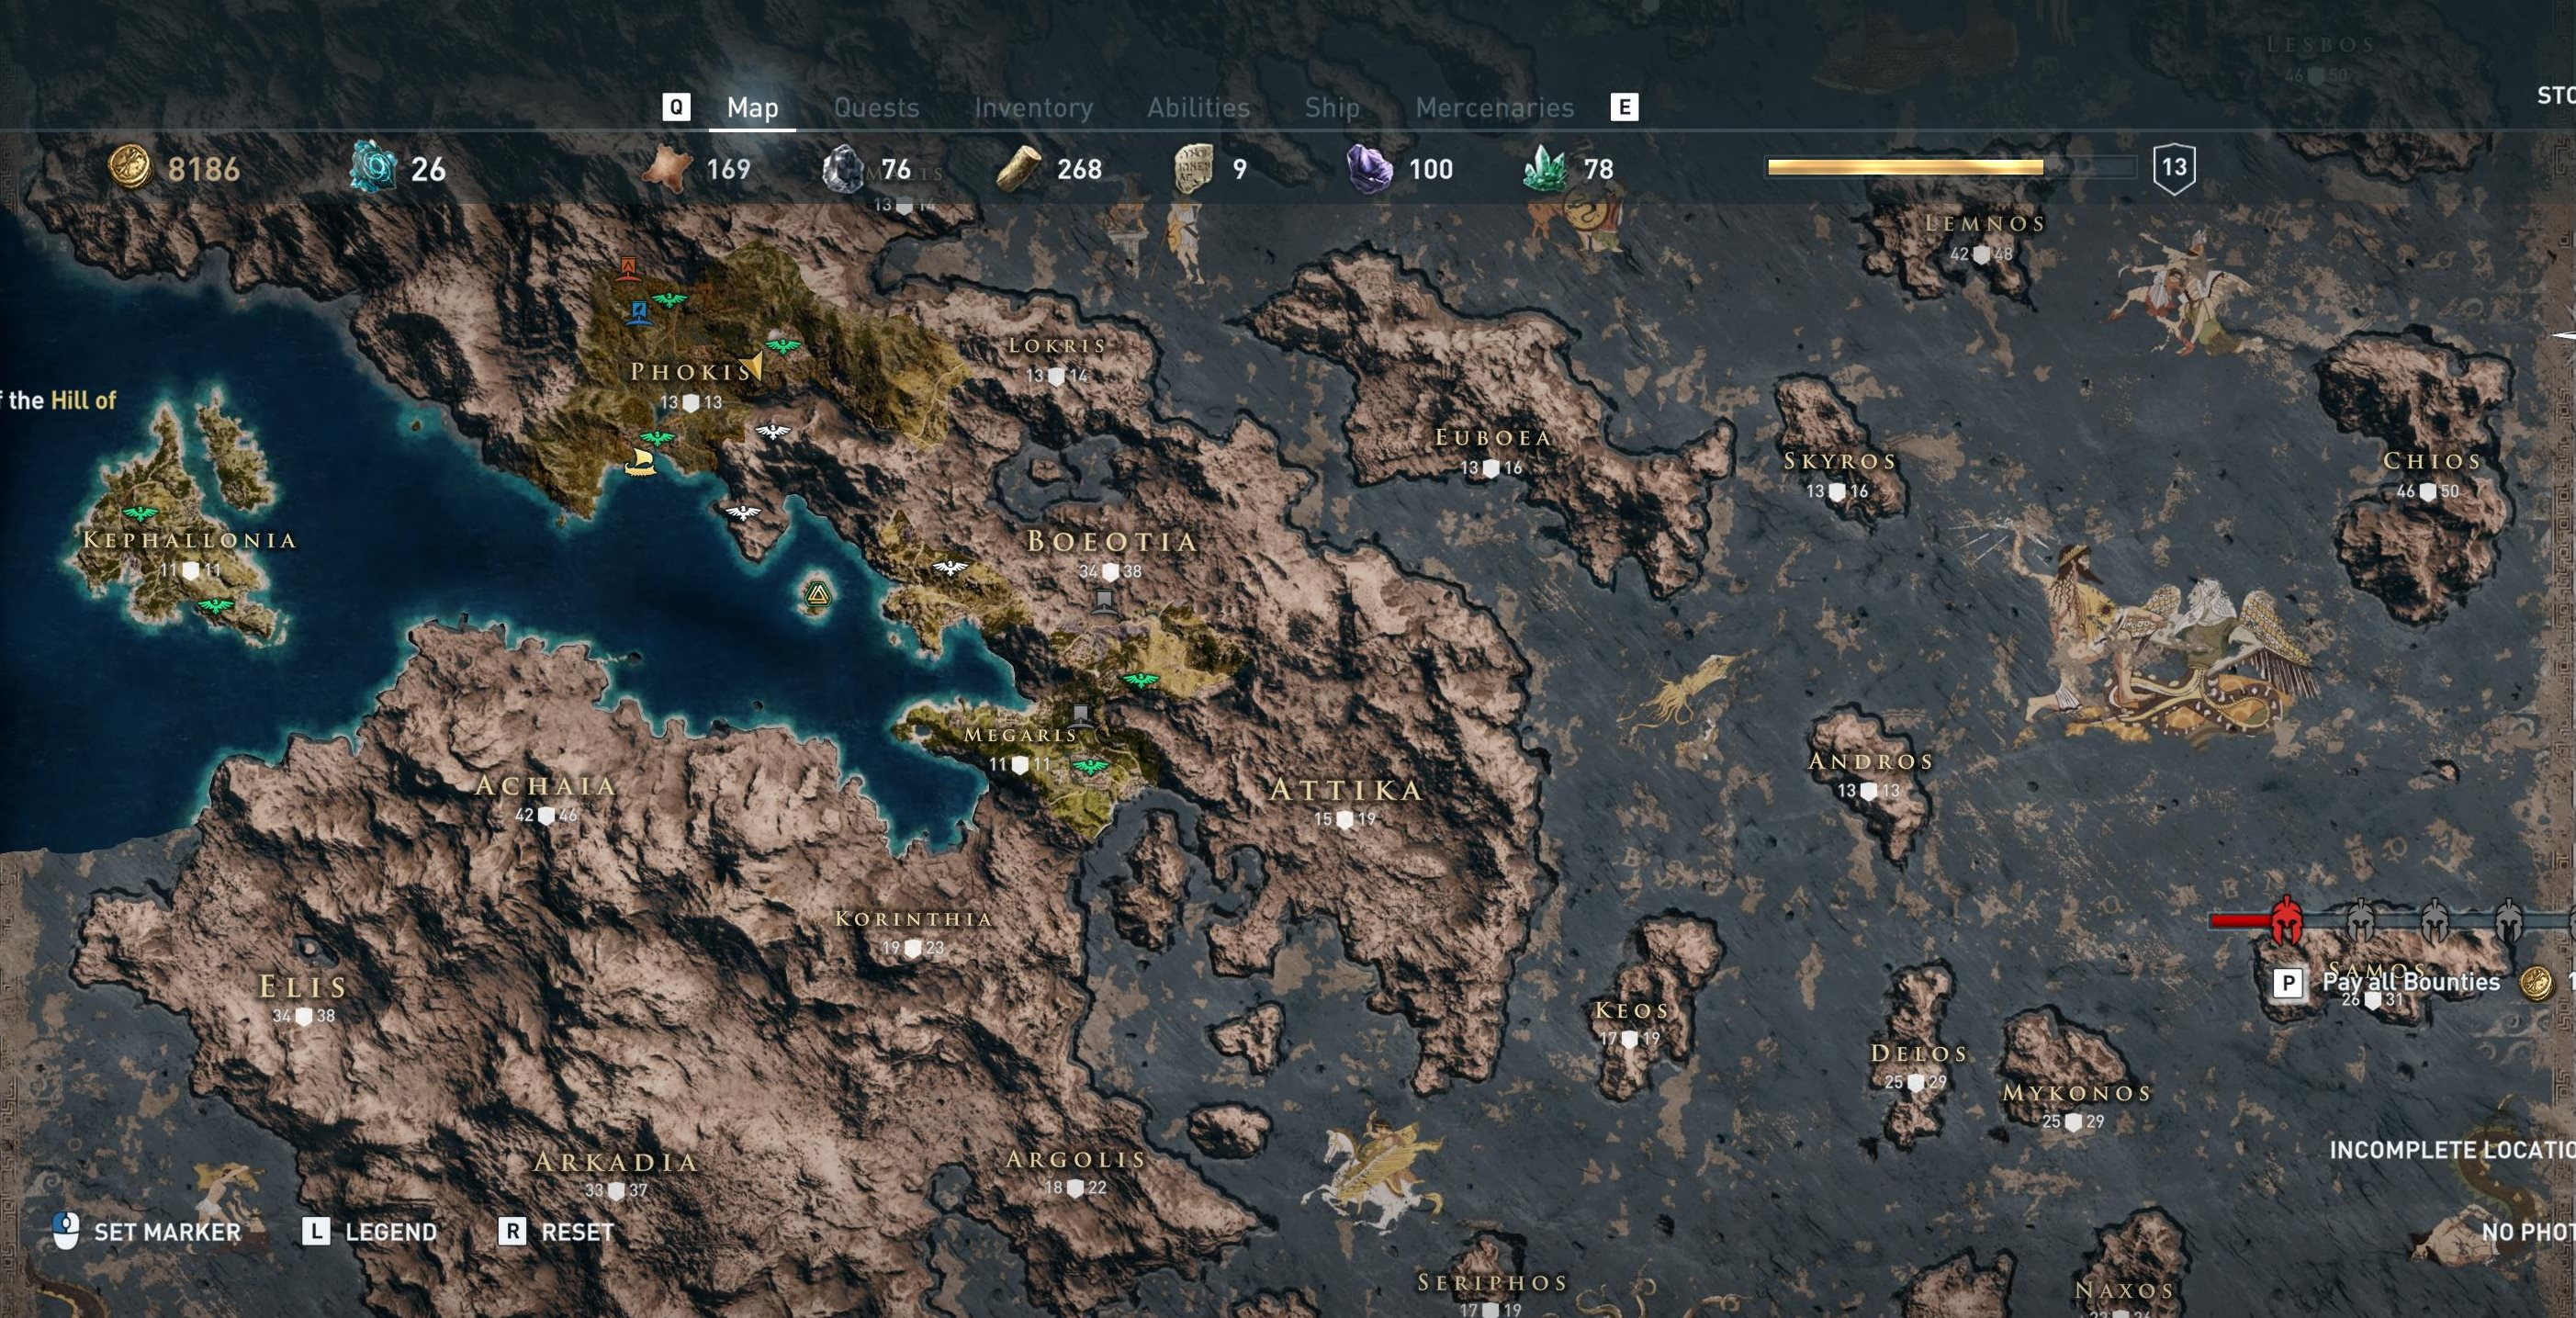 Just part of the map in Assassin's Creed Odyssey.